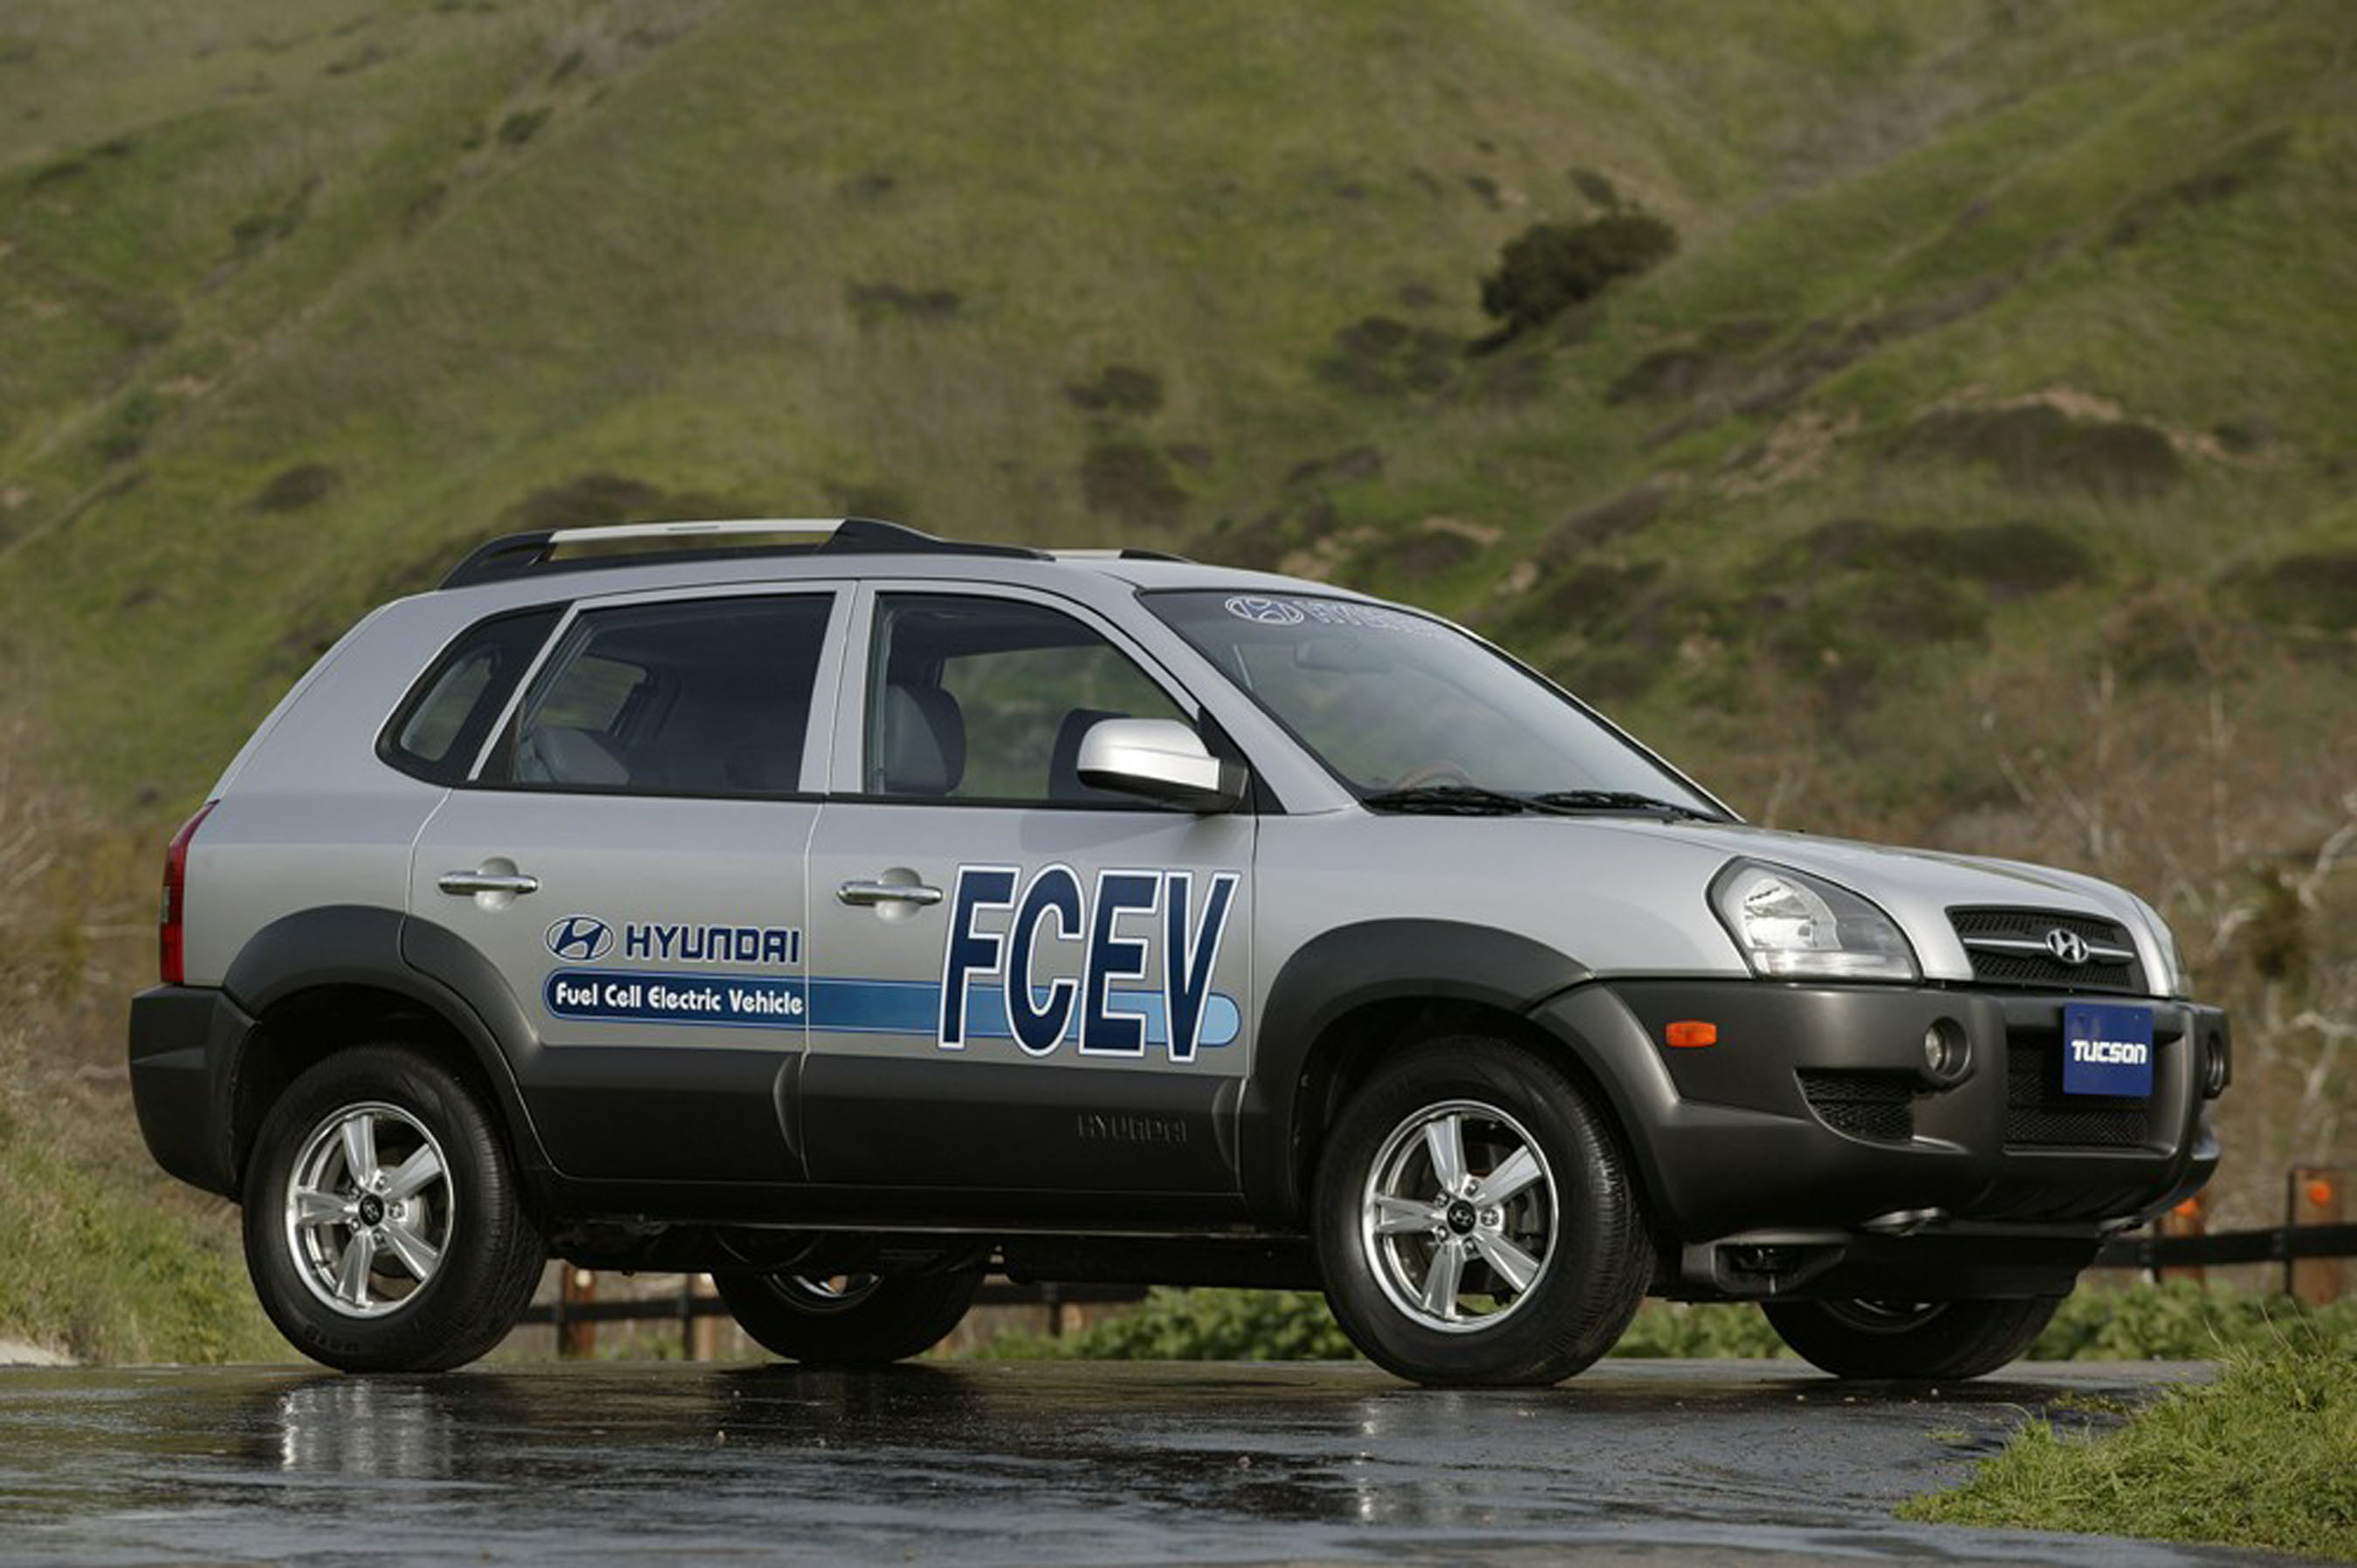 ... today unveiled its second-generation fuel cell vehicle, the Tucson FCEV, ...